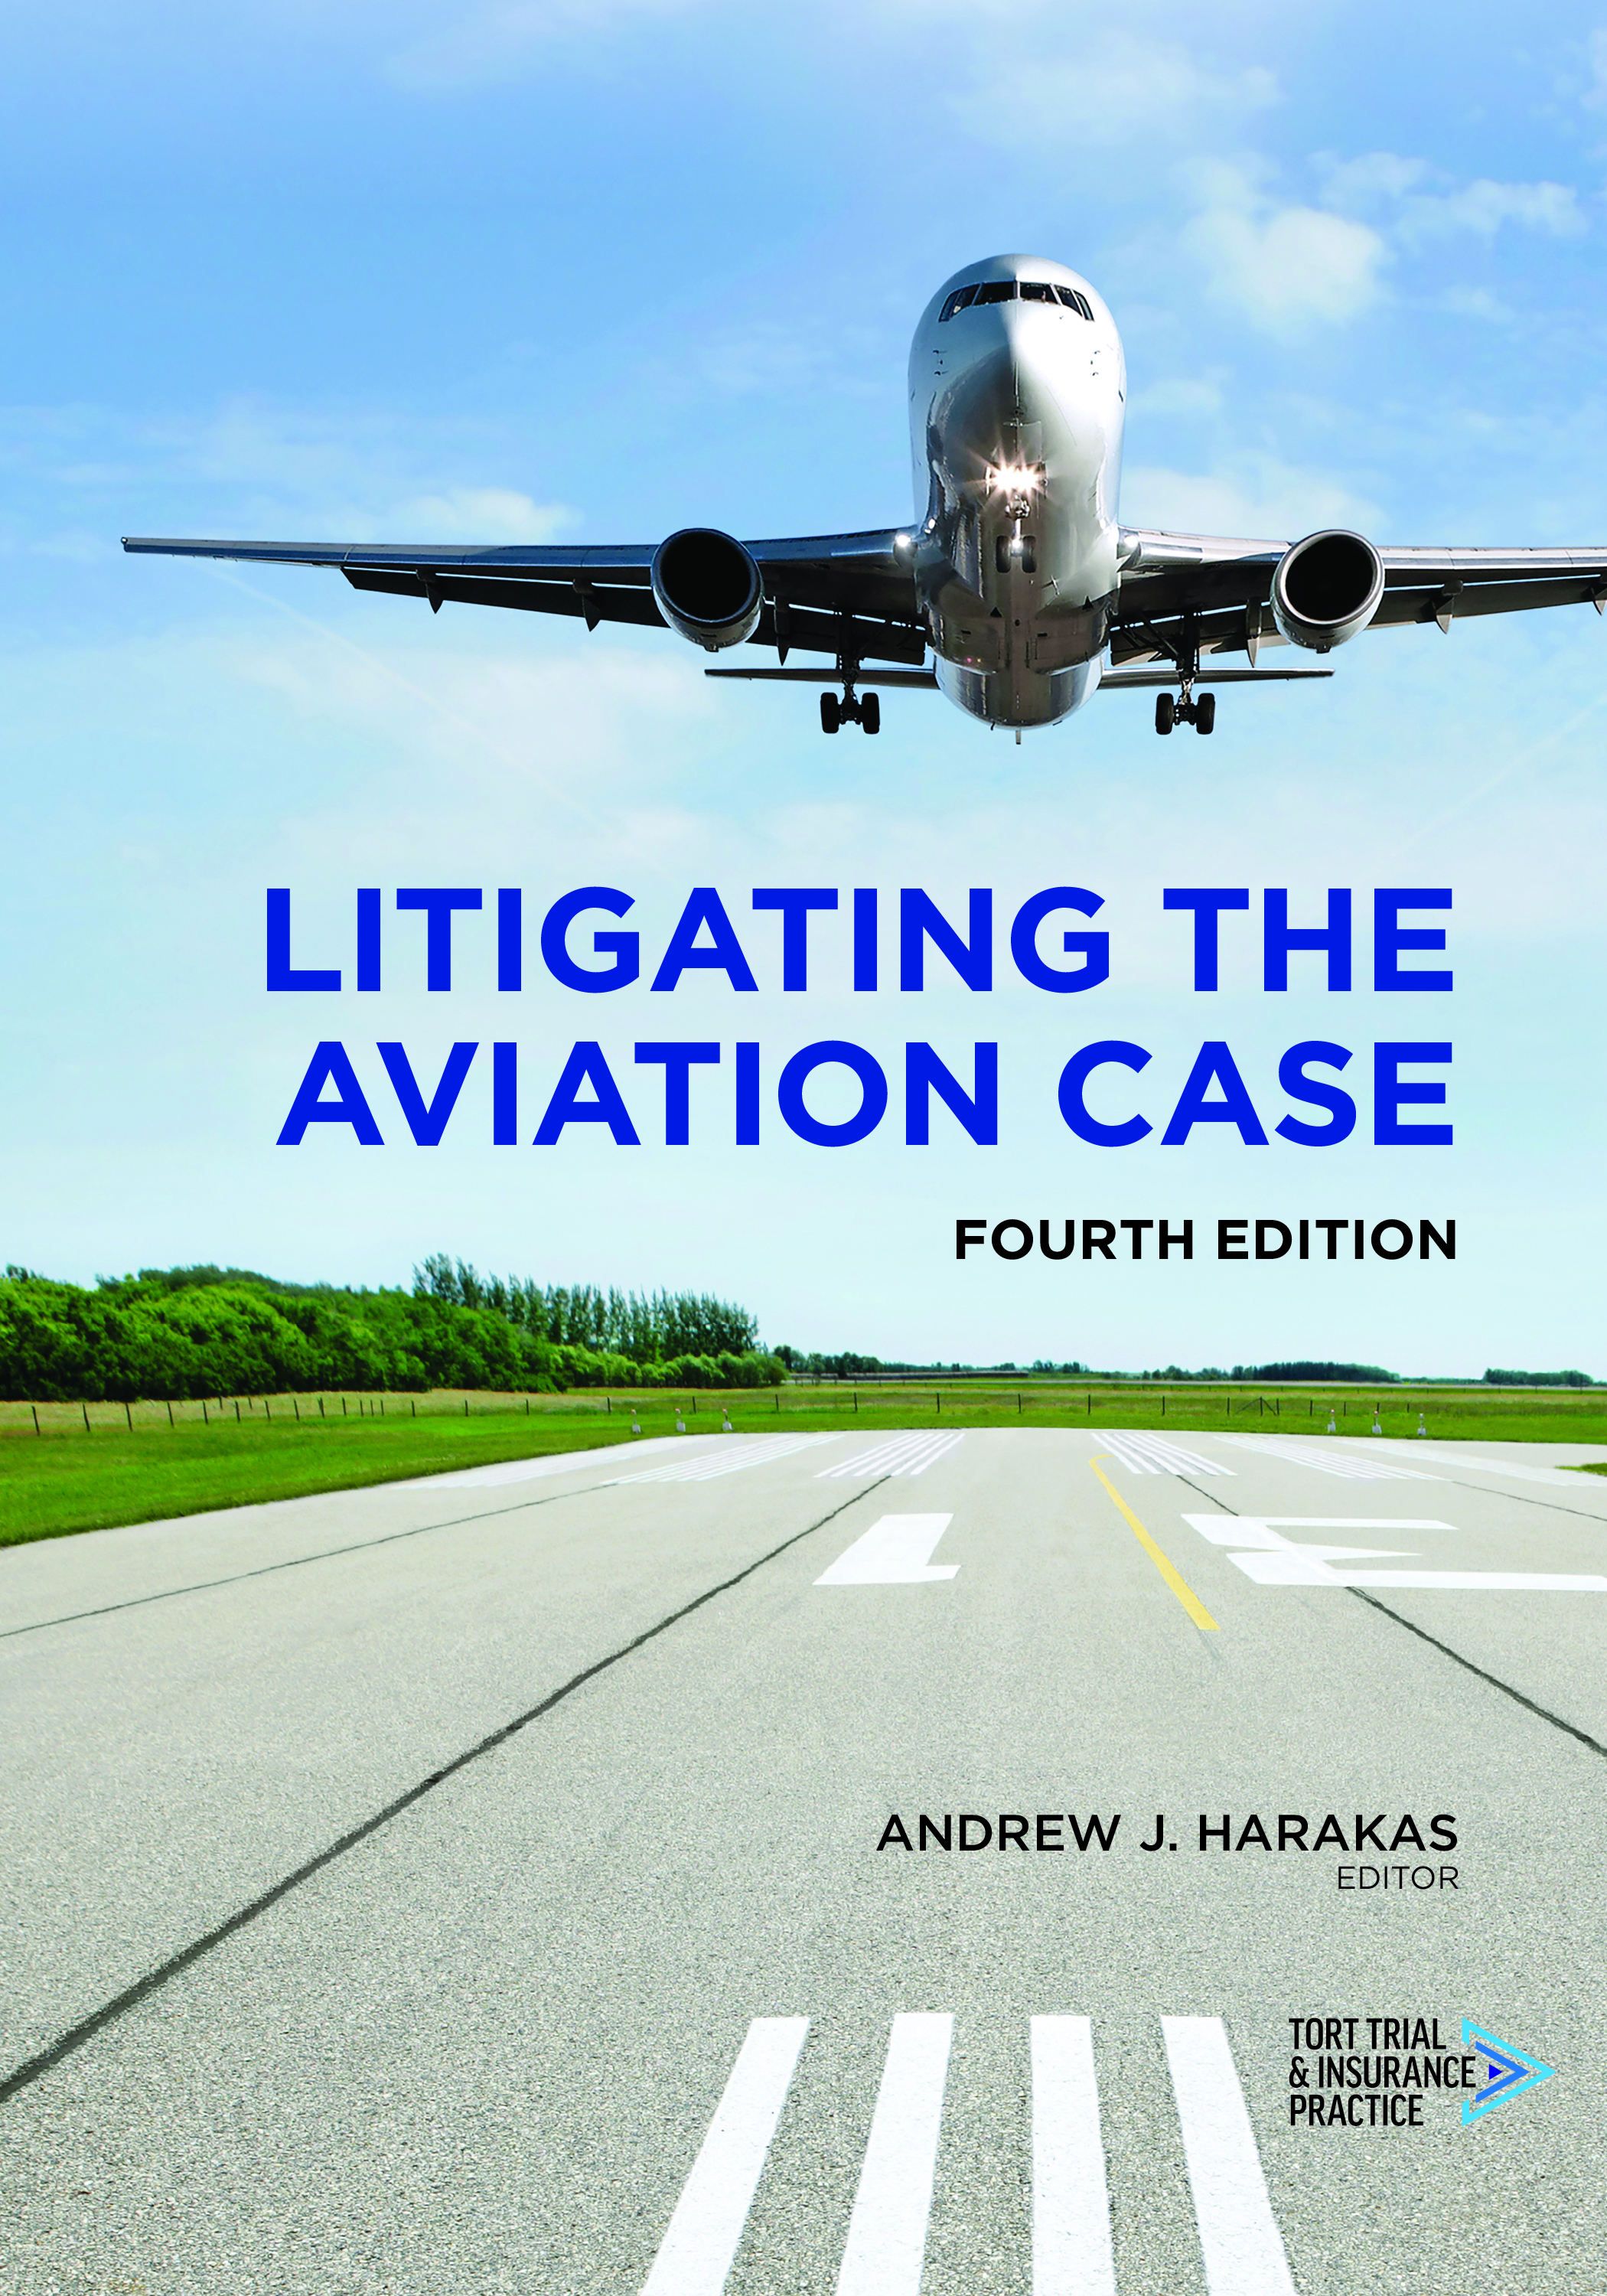 Litigating the Aviation Case, Fourth Edition